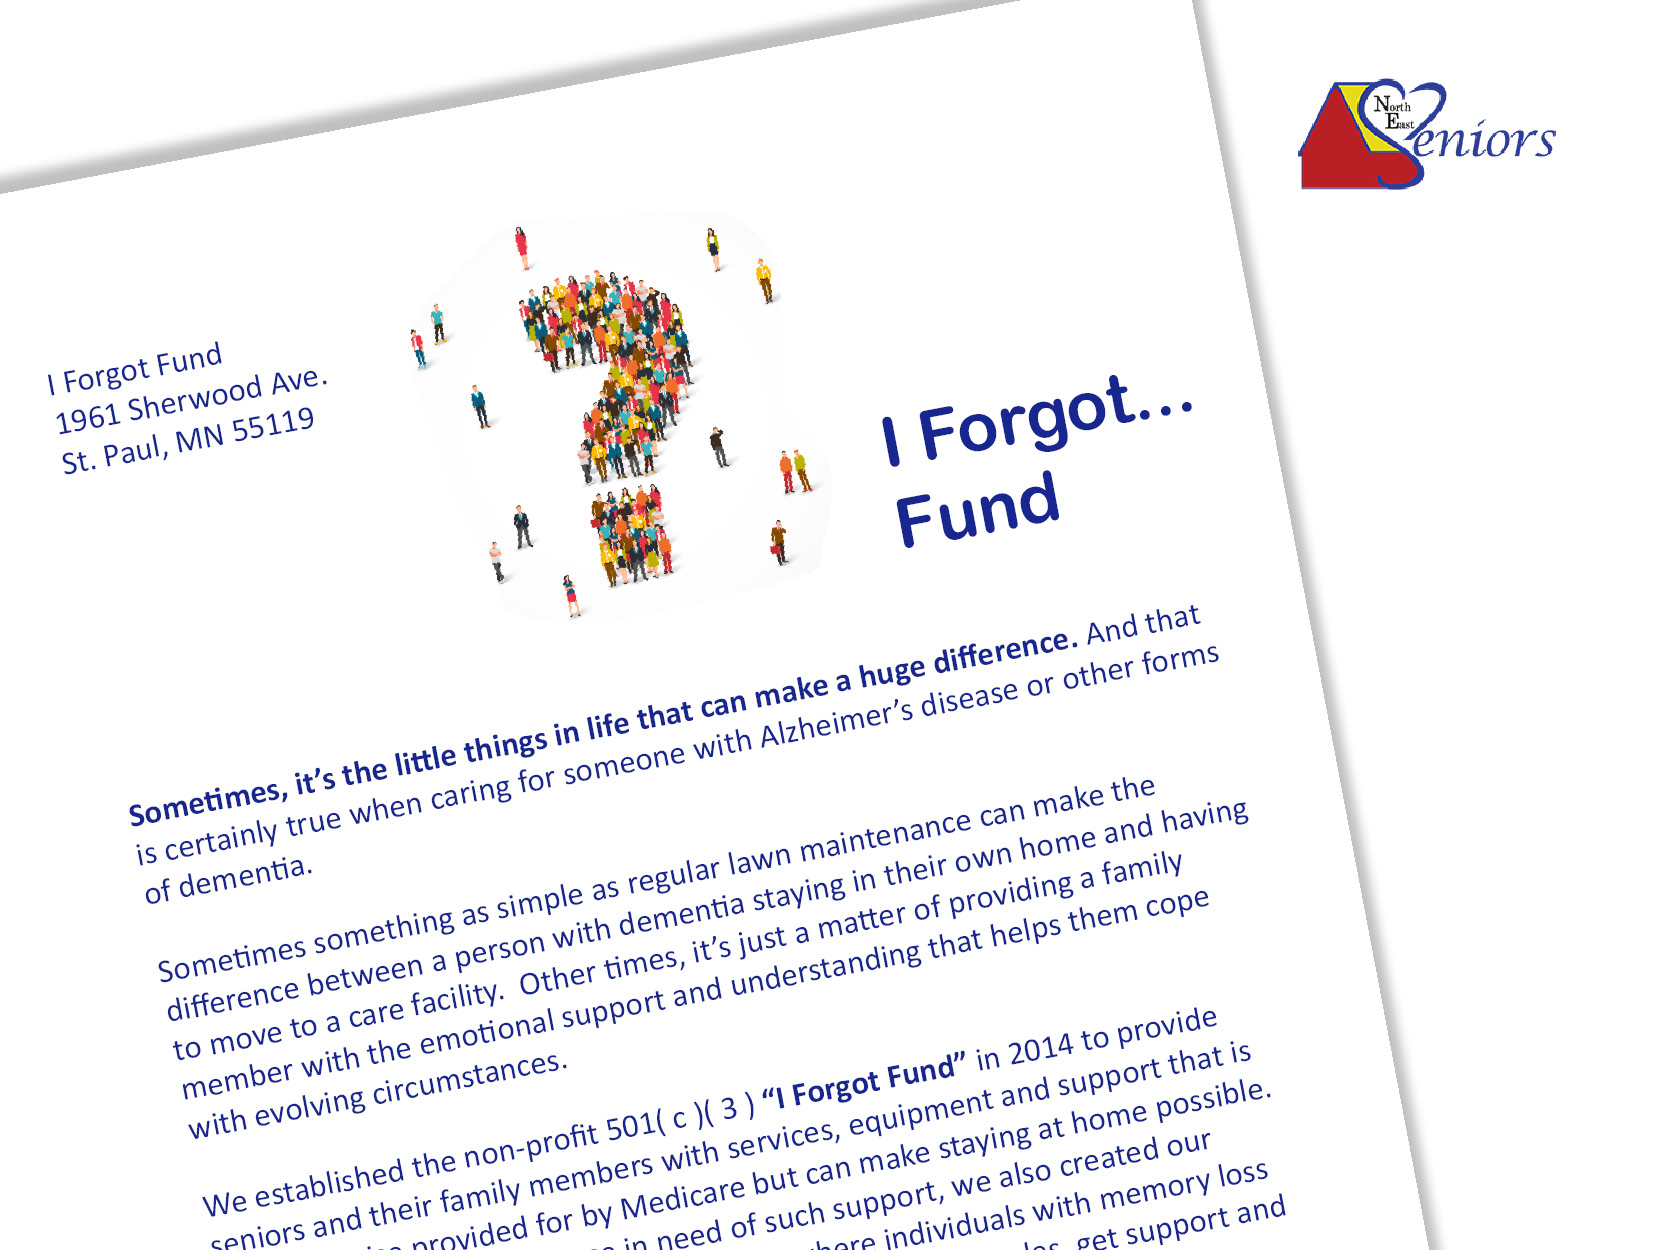 """North East Seniors """"I Forgot"""" Fund Appeal Letter - Strategy, copy, and designI worked with the North East Seniors for Better Living to create an appeal letter that took into account their unique donor base and needs. The final letter was easily readable, and was something they could print easily and inexpensively on their own, as well as revise for future use."""